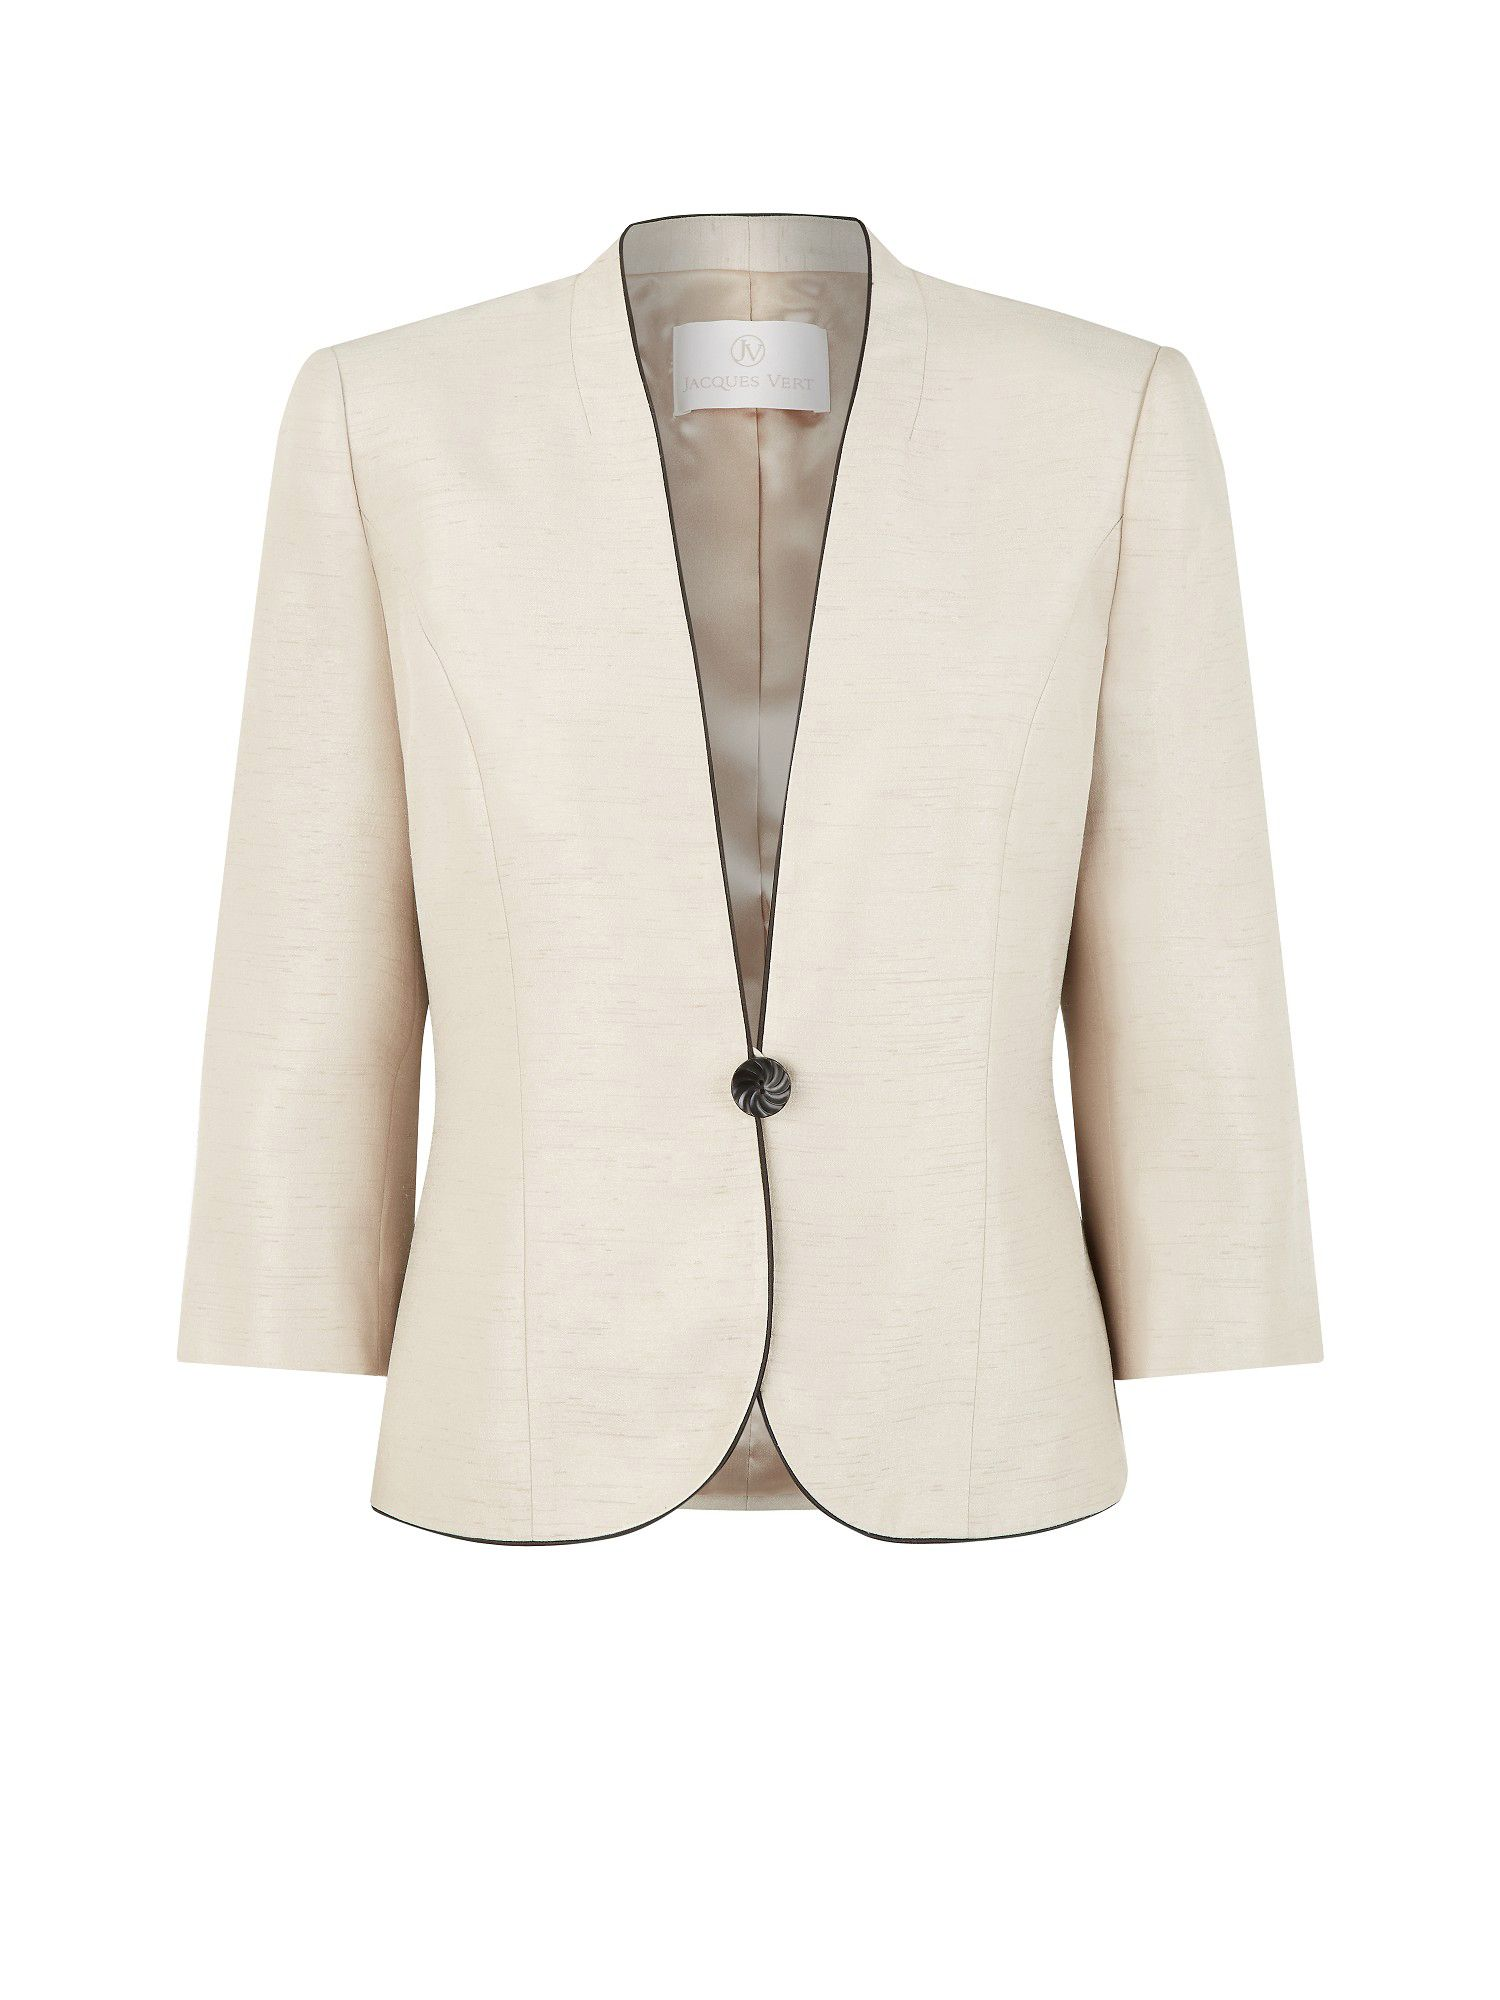 Contrast piped jacket